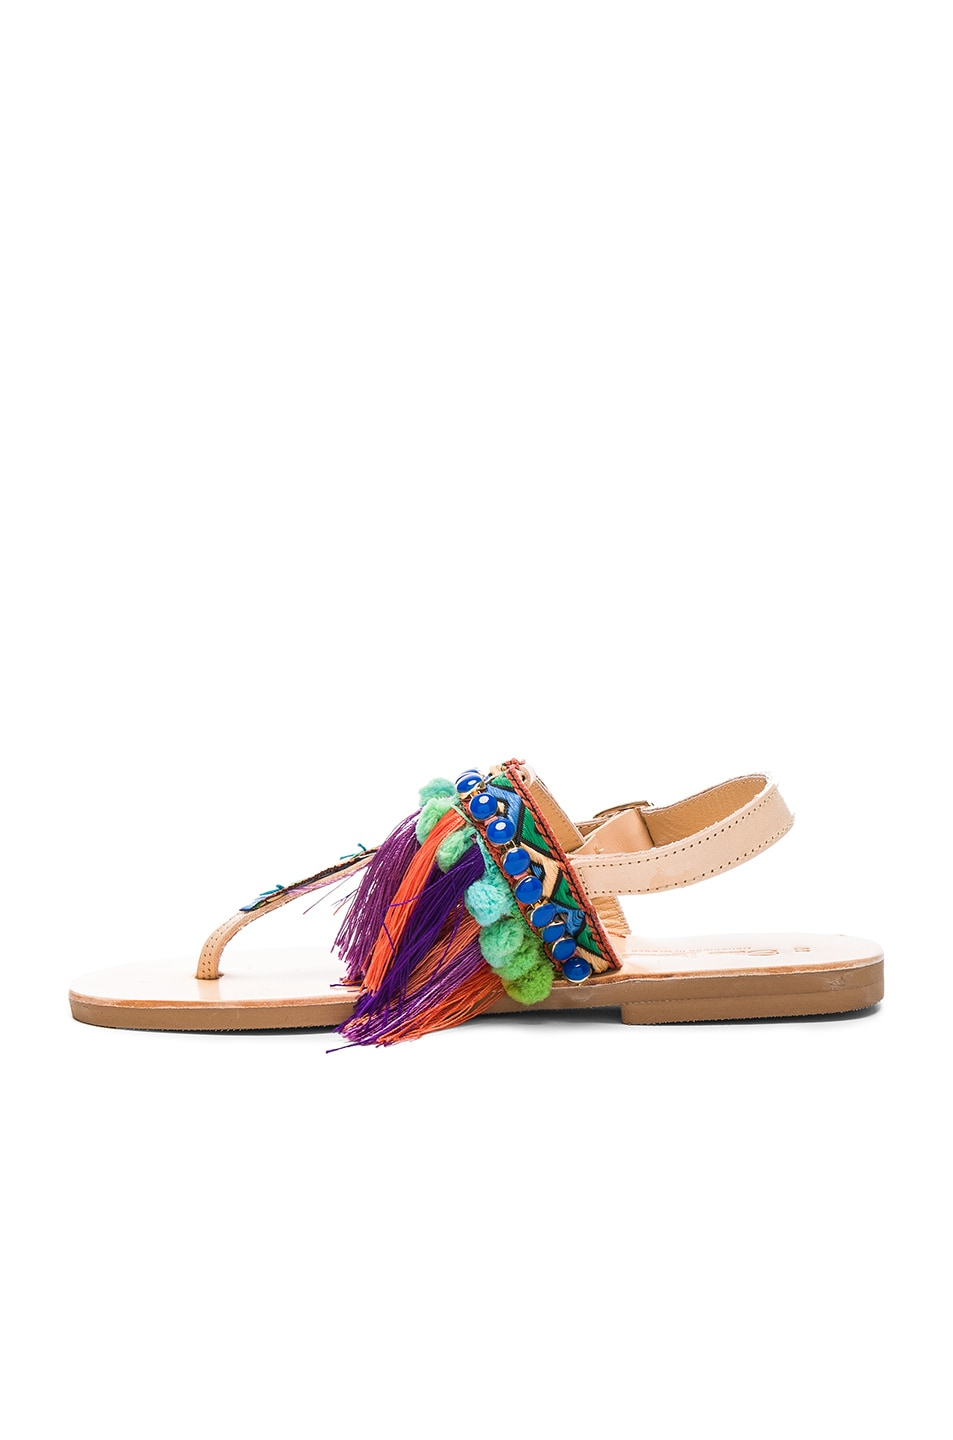 Image 5 of Elina Linardaki Leather Dizzy Parrot Sandals in Multi